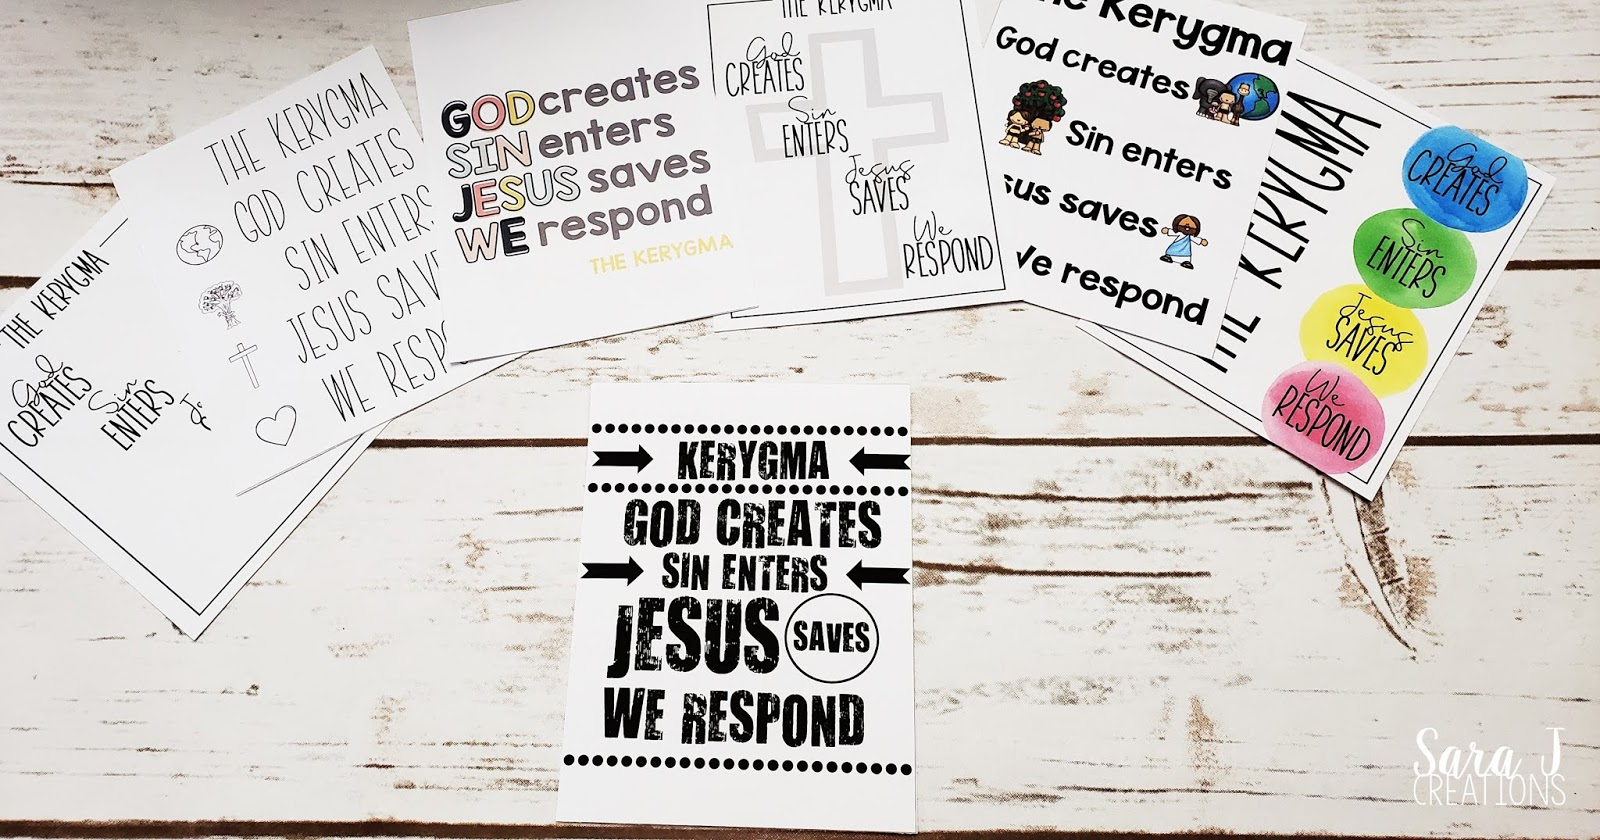 Help kids to know the kerygma - which is proclaiming the Gospel. Teach your children to know God, sin, and that Jesus Christ saved us all. Use these tools to make teaching the Kerygma to kids even easier. Informative videos for adults, engaging videos for students, plus free printable posters.